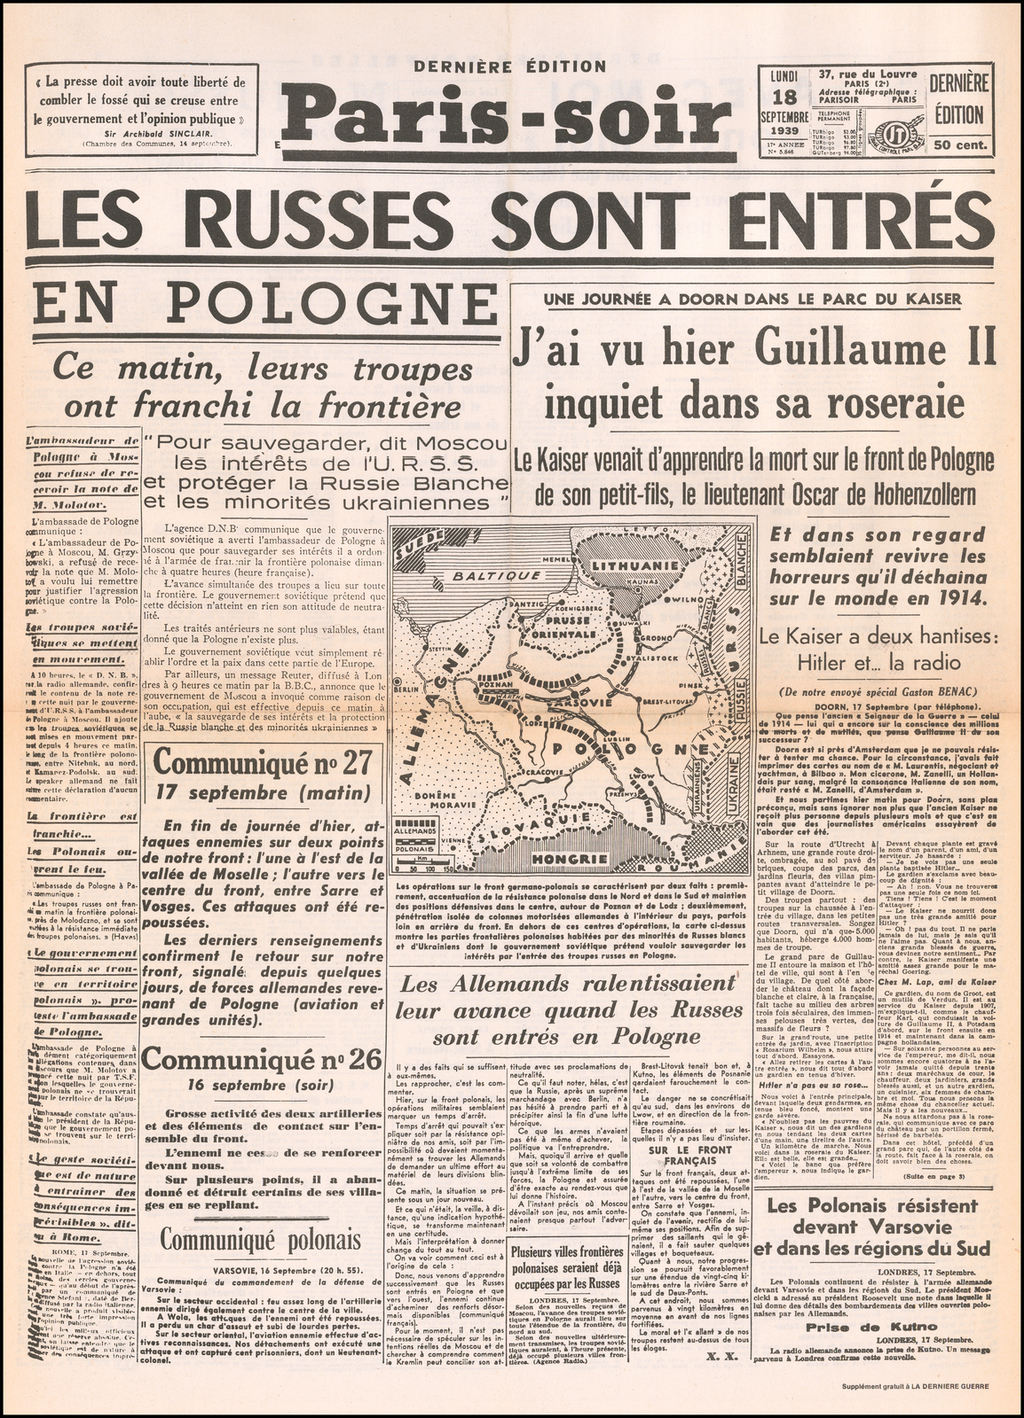 [Russia Takes Poland -- September 18, 1939] By Paris-soir